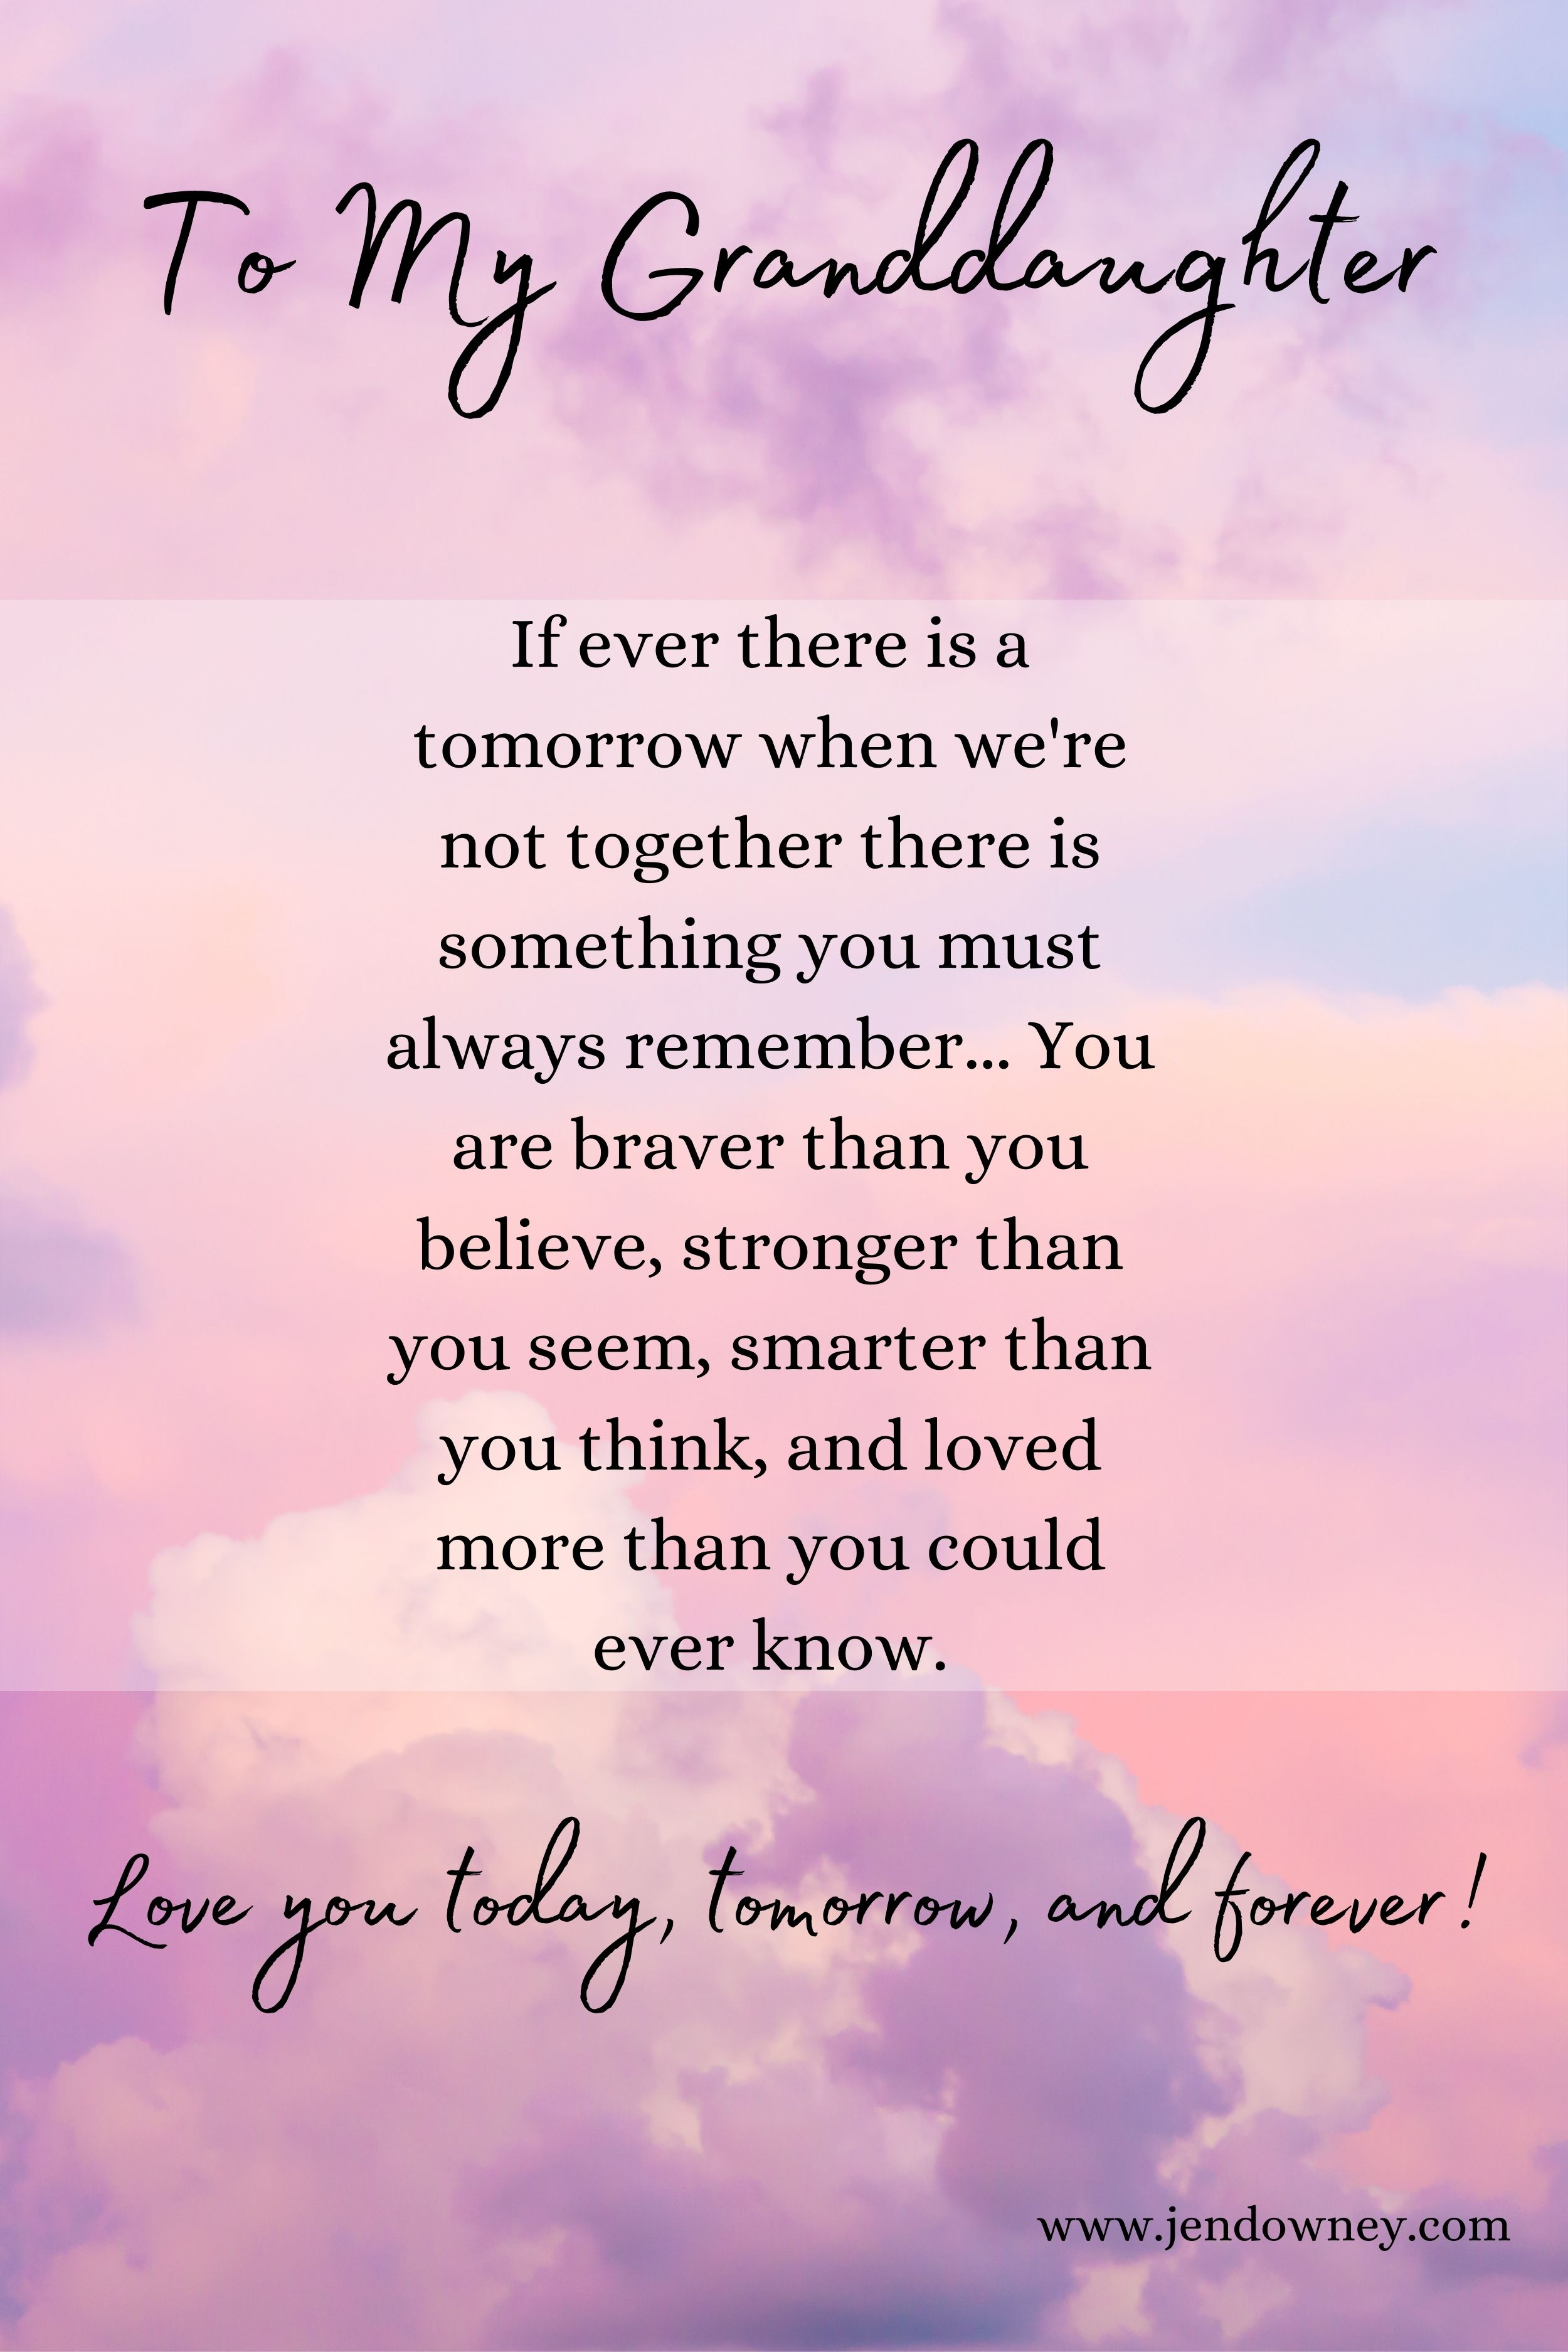 Love You Forever And Always Granddaughter In 2021 Quotes About Grandchildren Grandaughter Quotes Granddaughter Quotes What should i write in my granddaughter